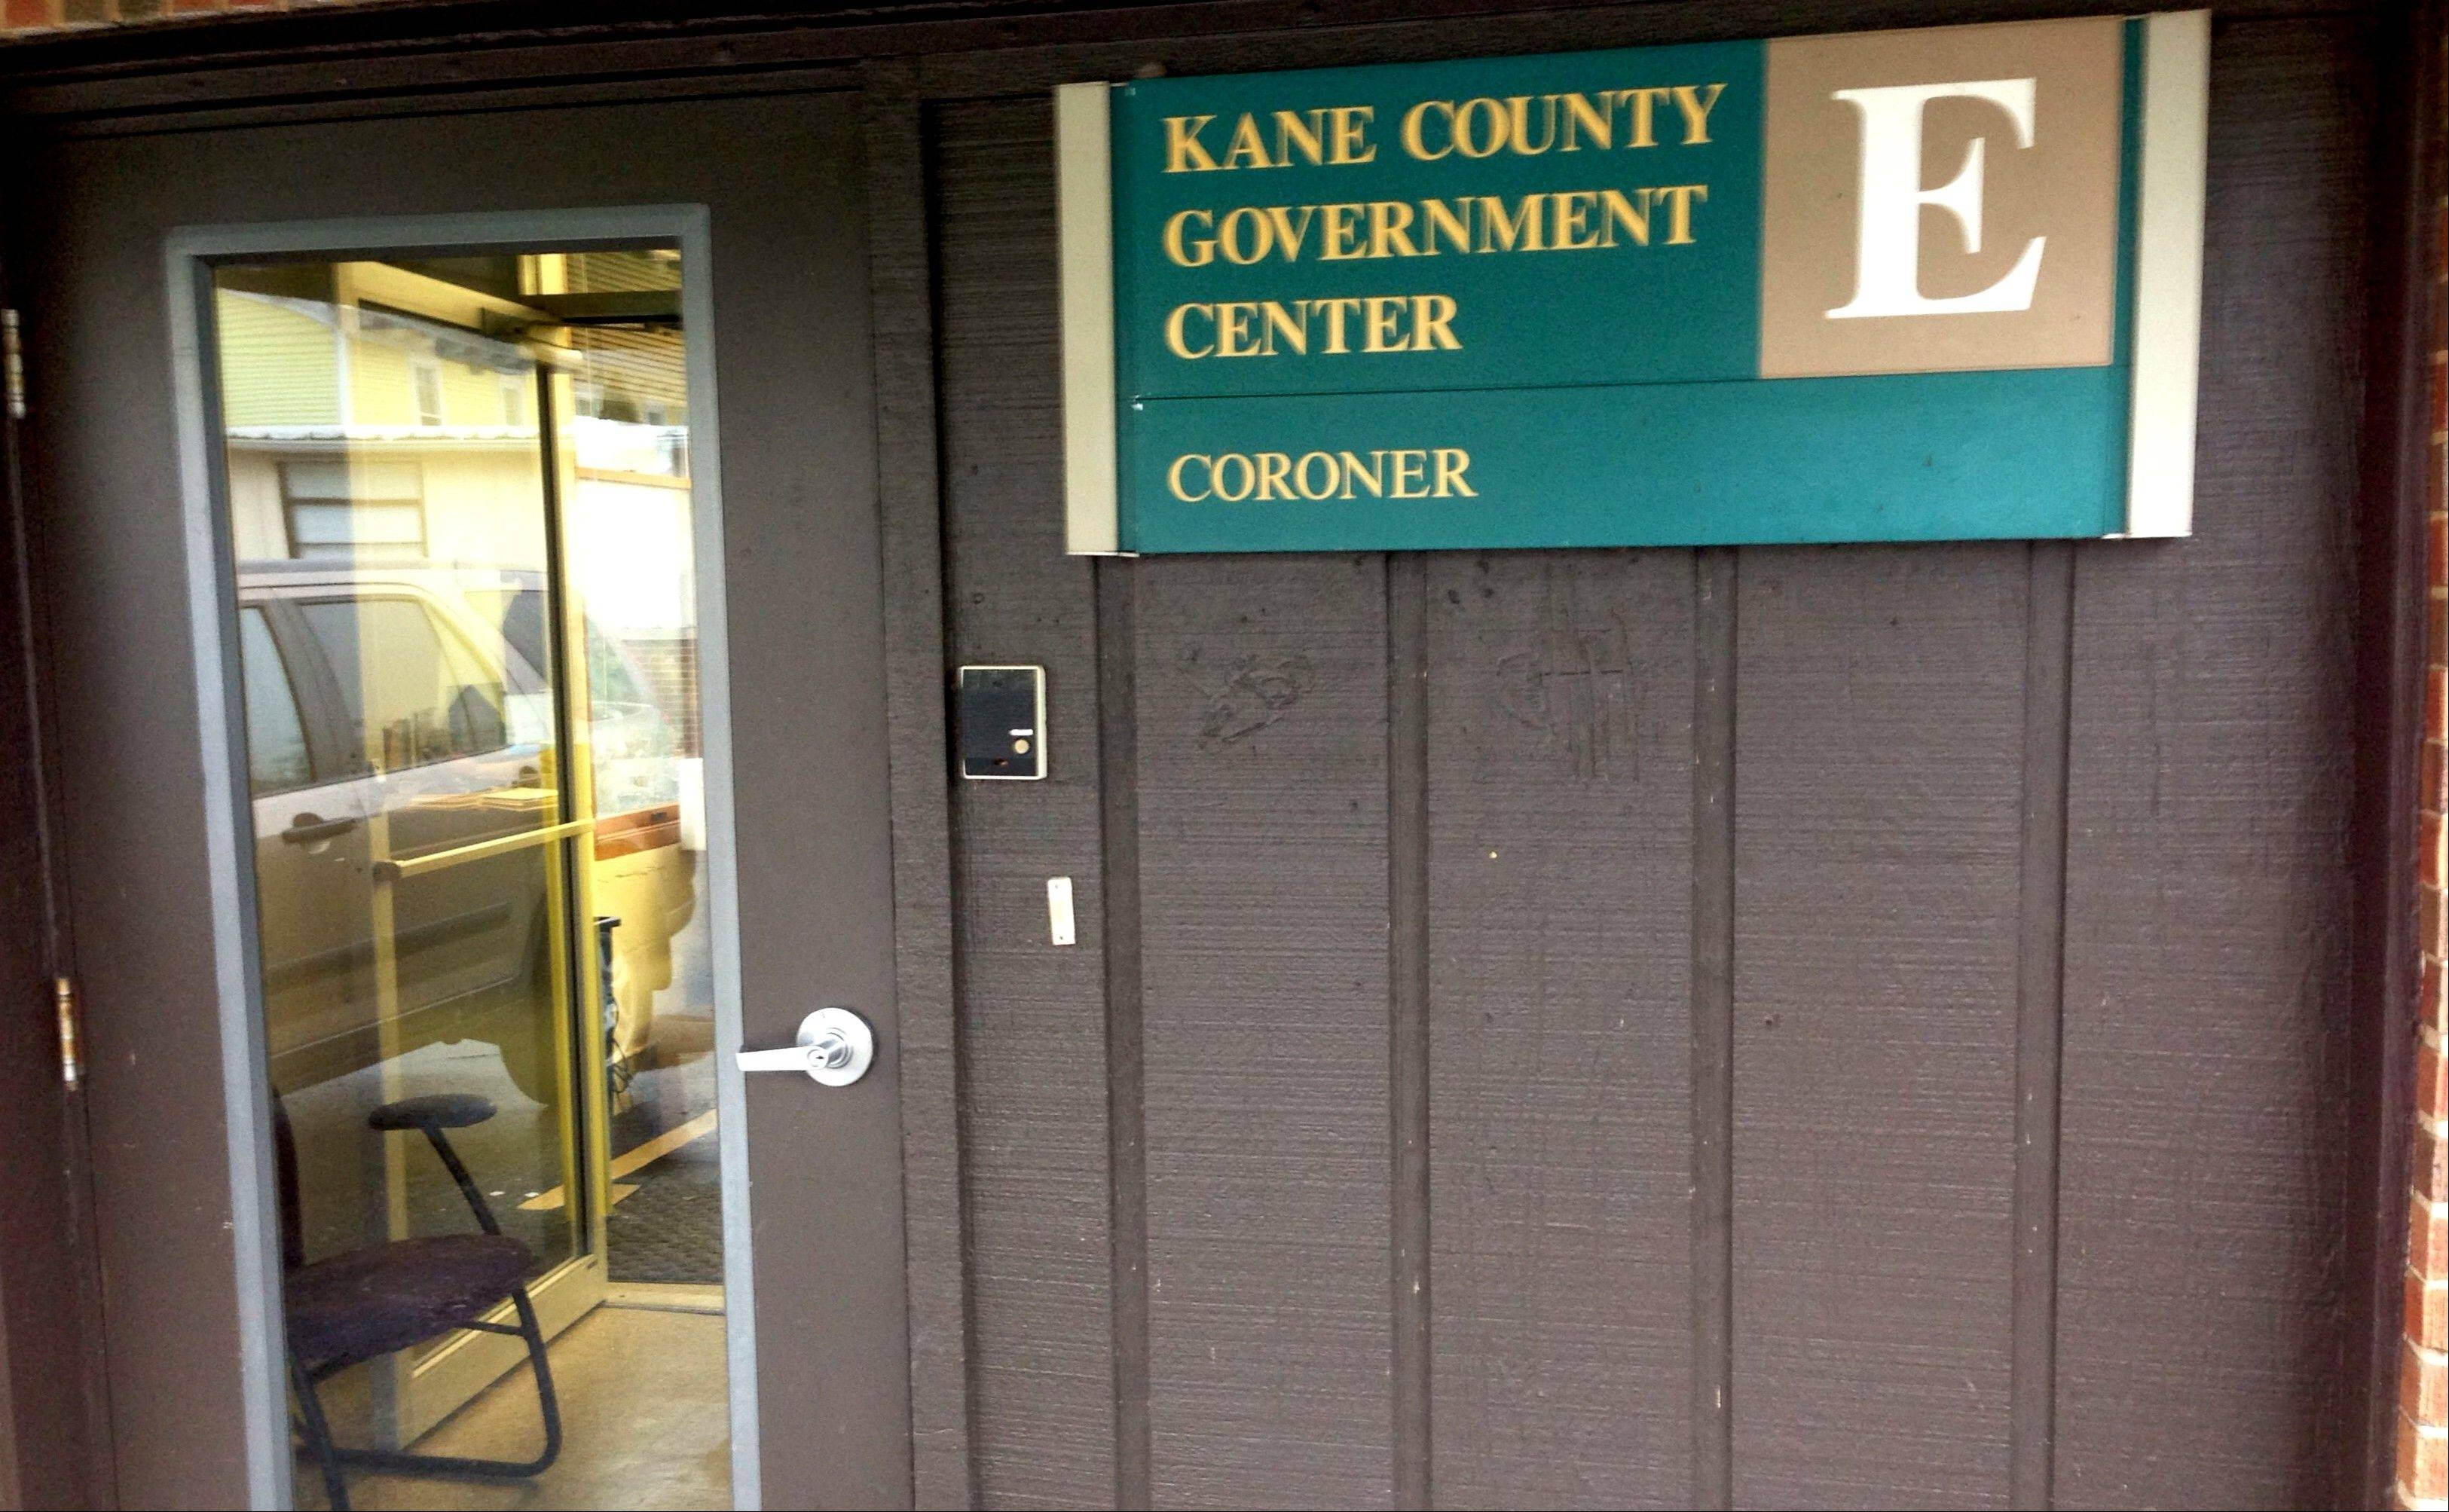 A freezer malfunction at the Kane County Coroner's Office resulted in a partial thawing of human remains that were under investigation.